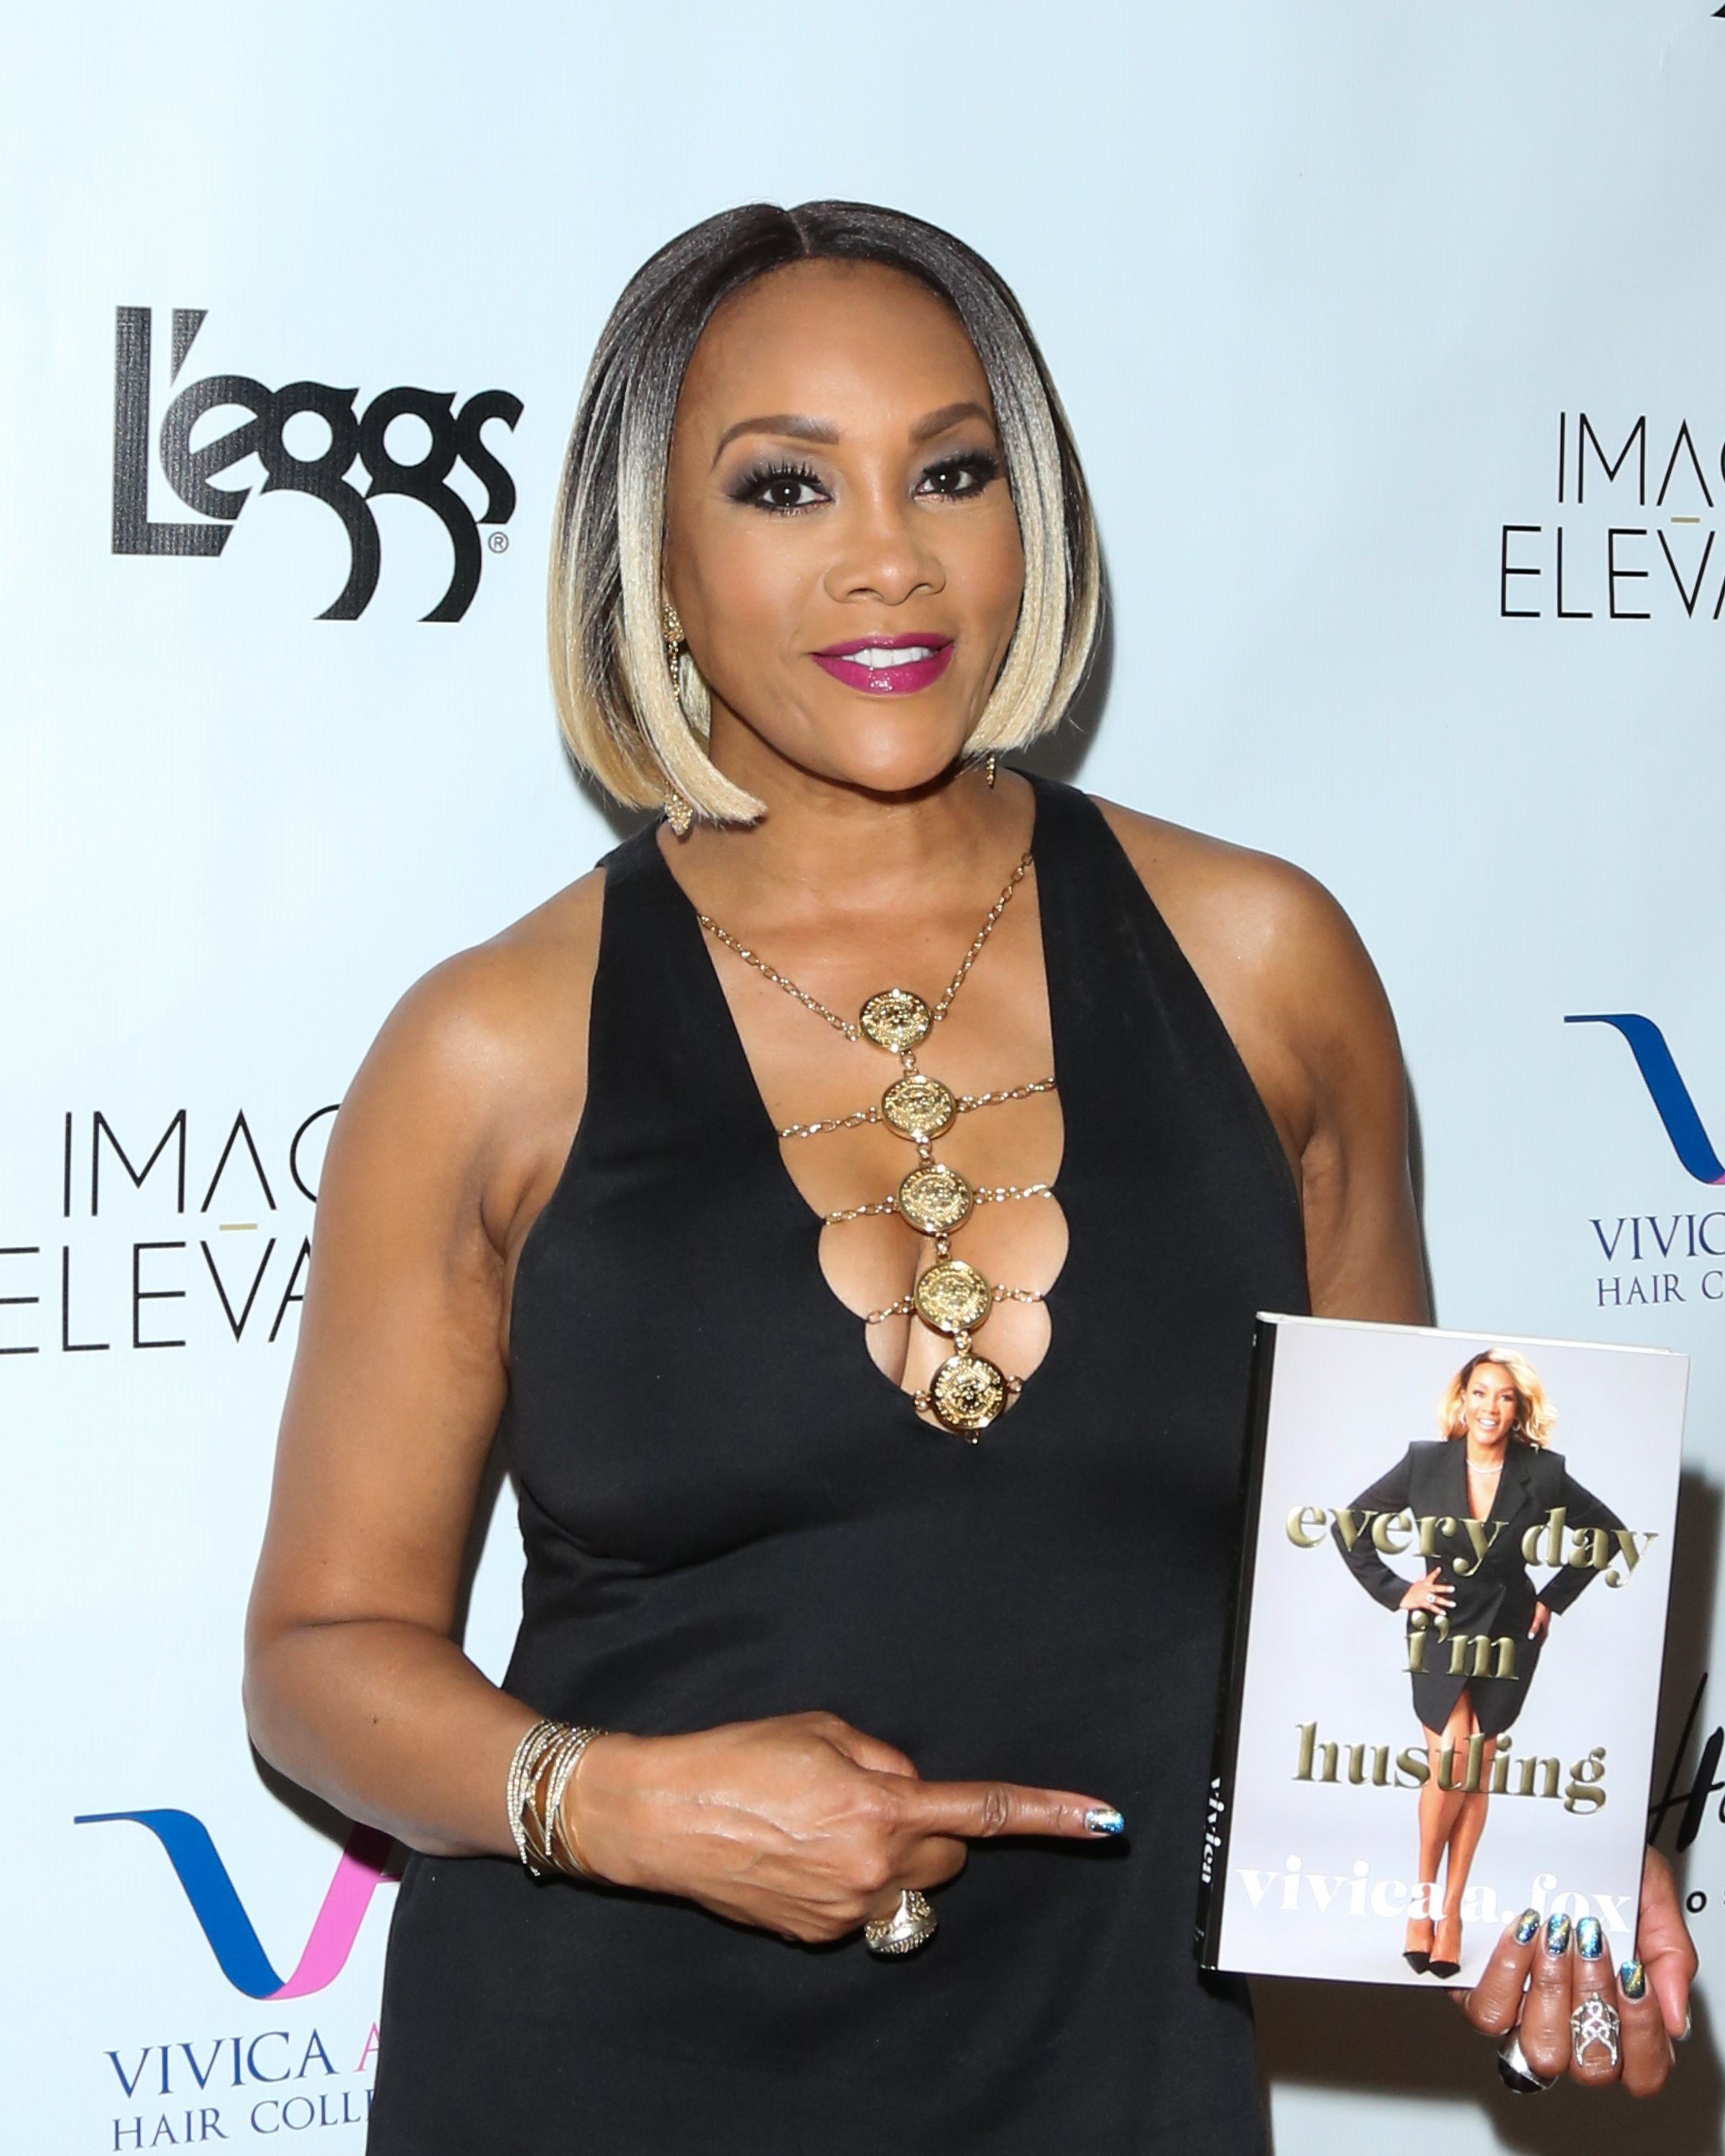 """Fox at a release party for her book """"Everyday I'm Hustling"""" in California in 2018. 